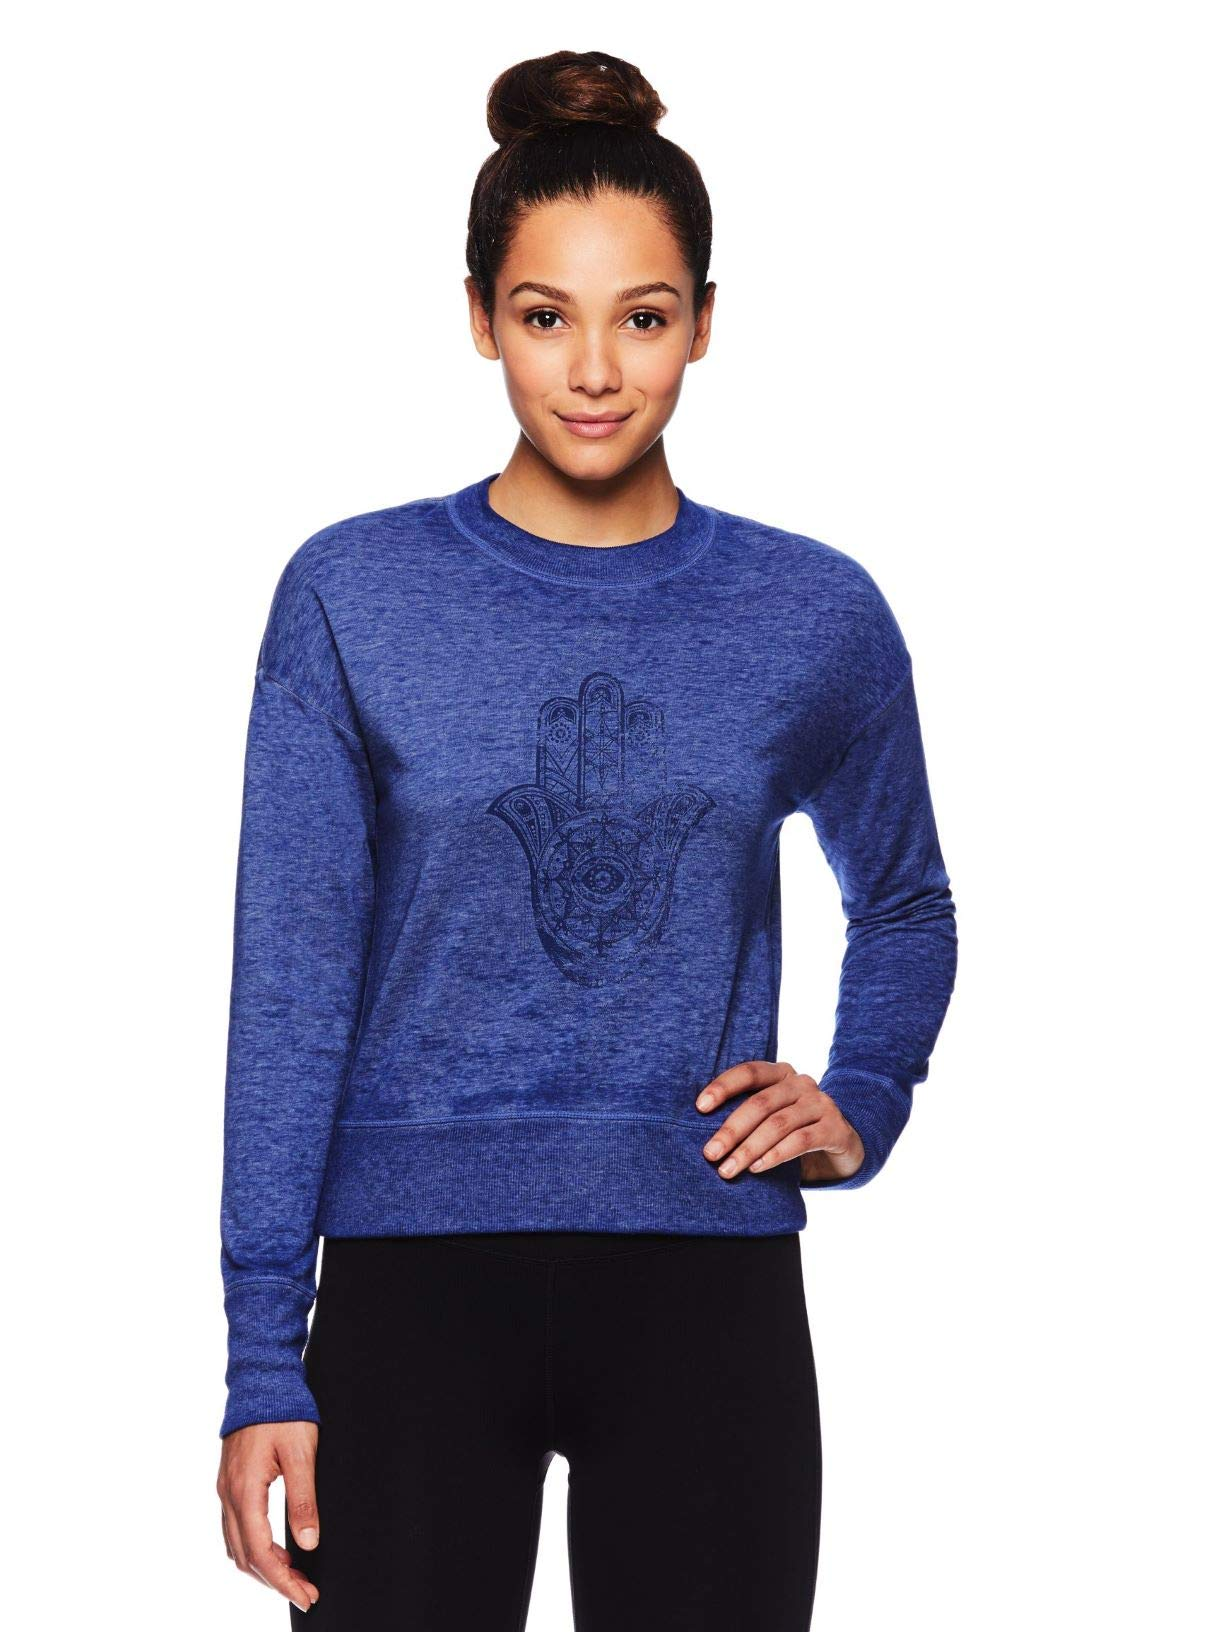 Gaiam Women's Pullover Fleece Yoga Sweatshirt - Long Sleeve Graphic Activewear Sweater - Medieval Blue, X-Large by Gaiam